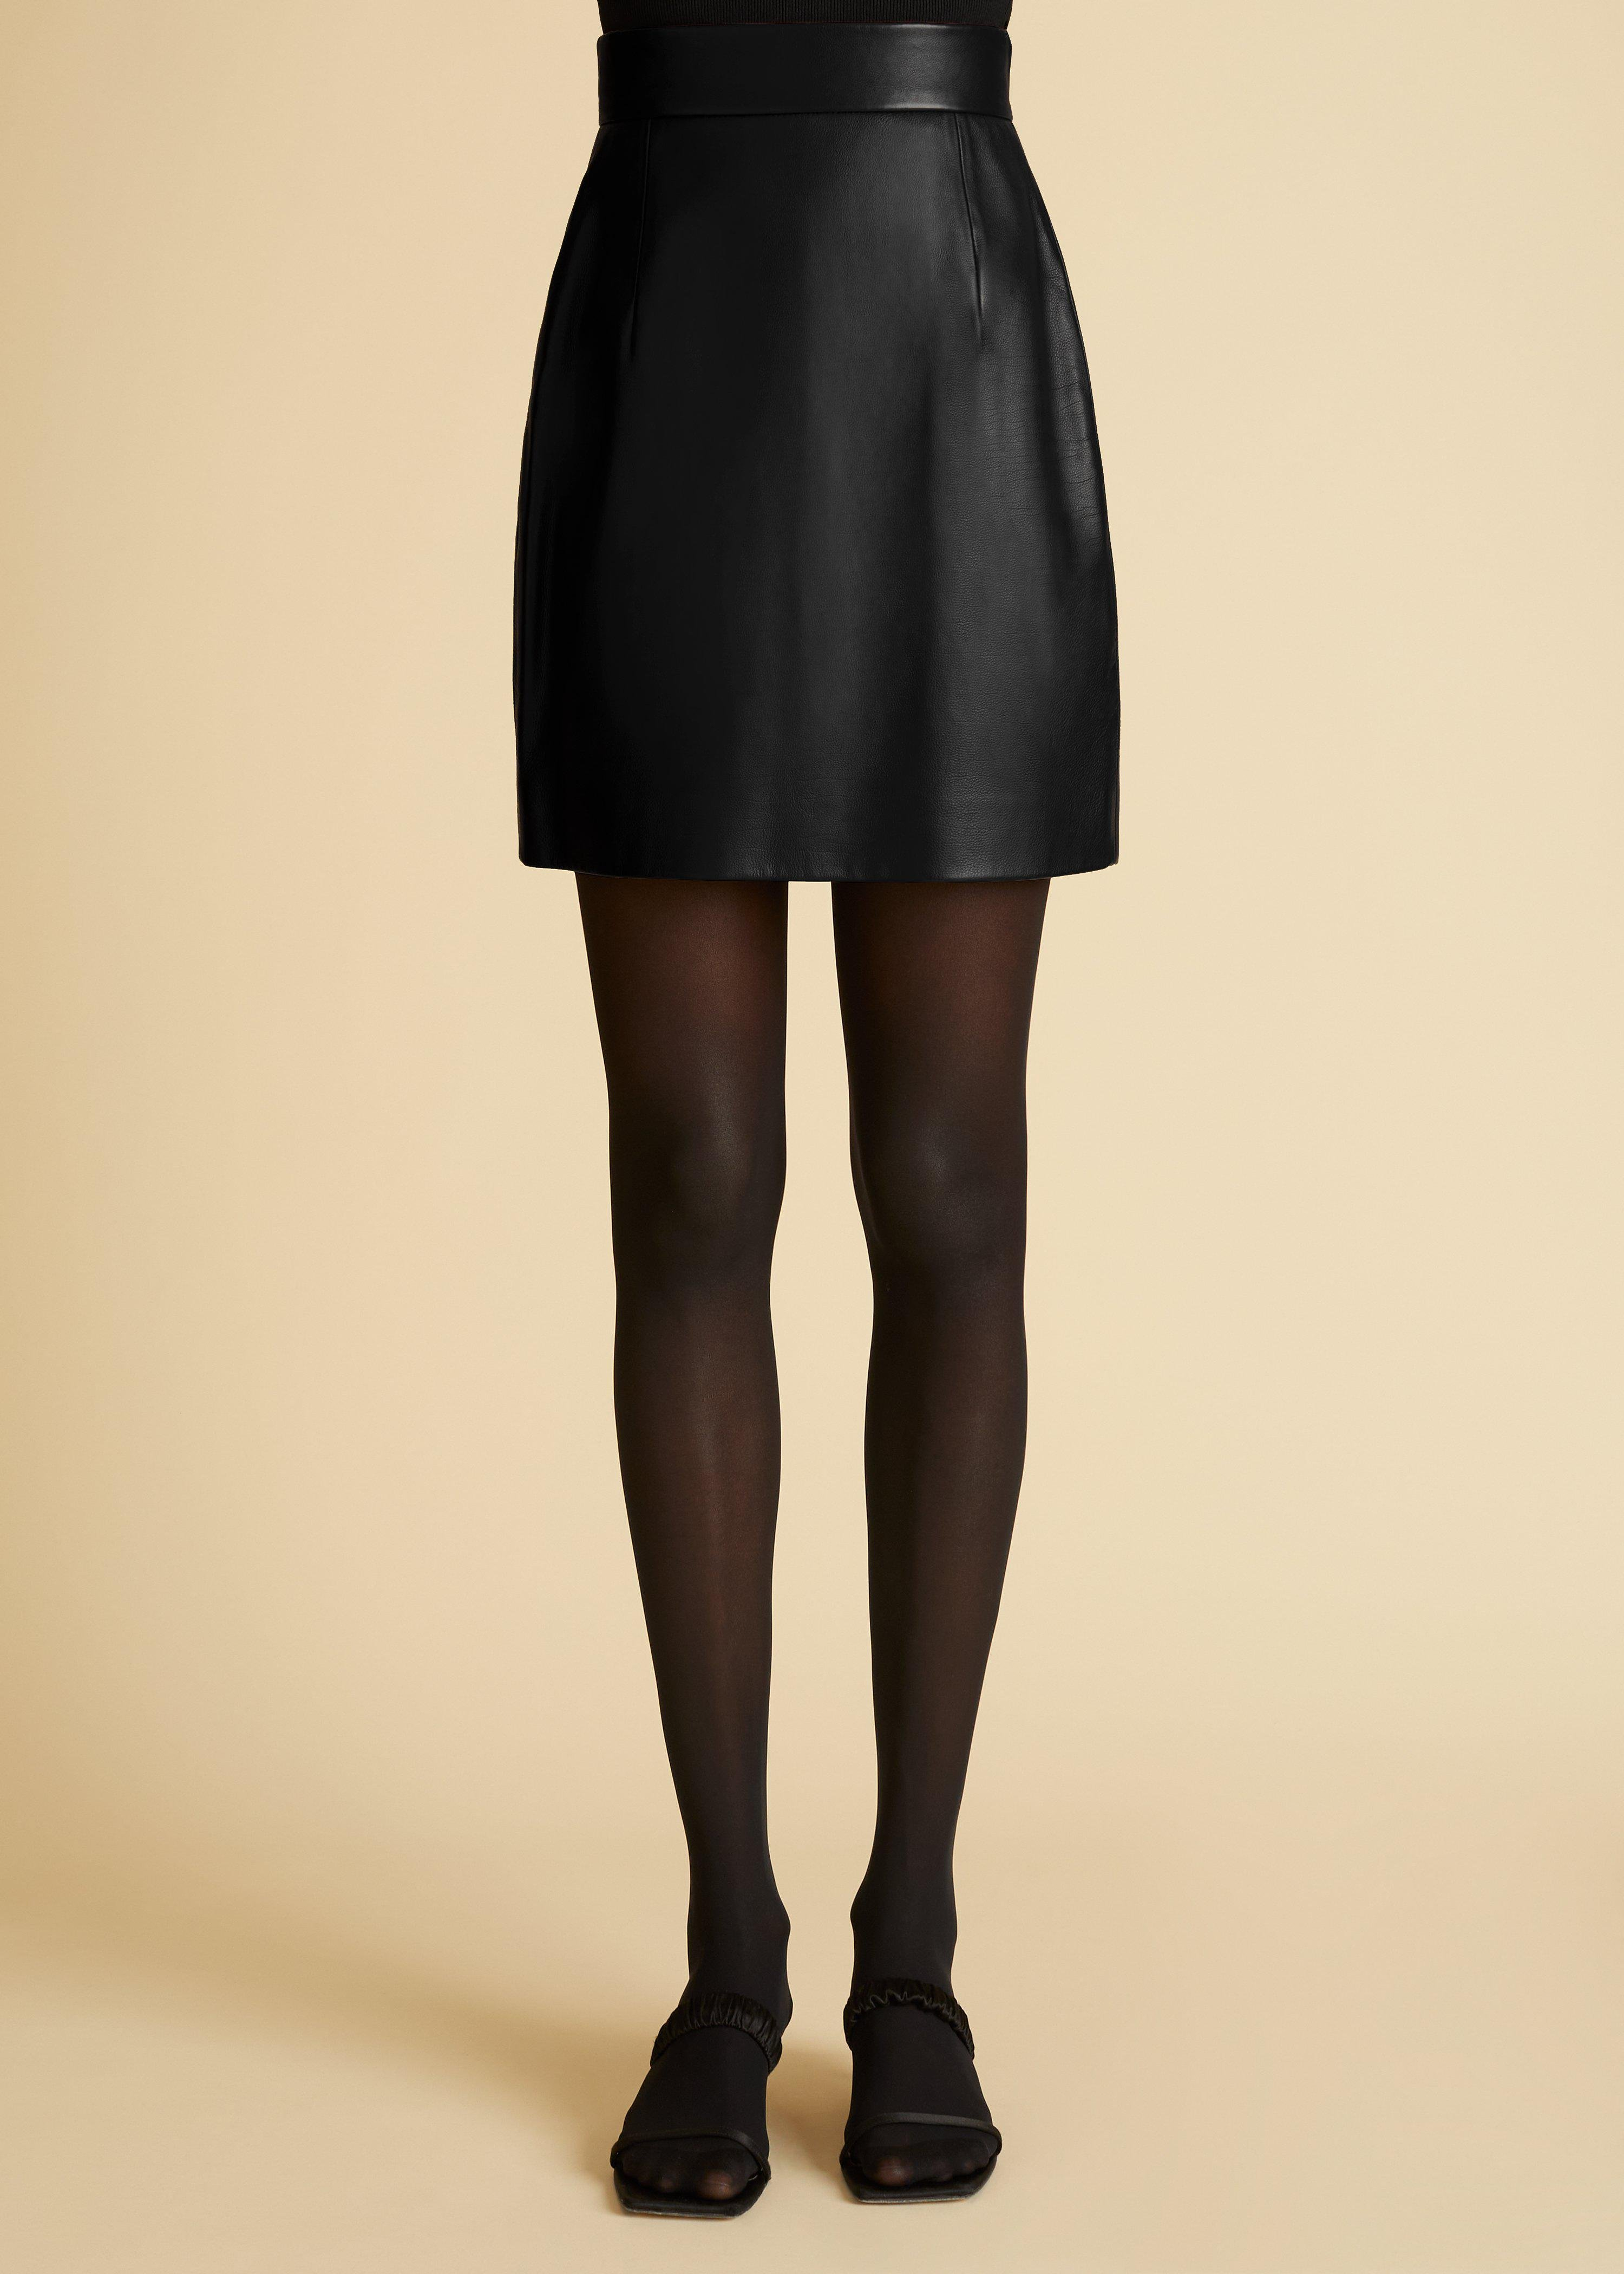 The Eiko Skirt in Black Leather 1